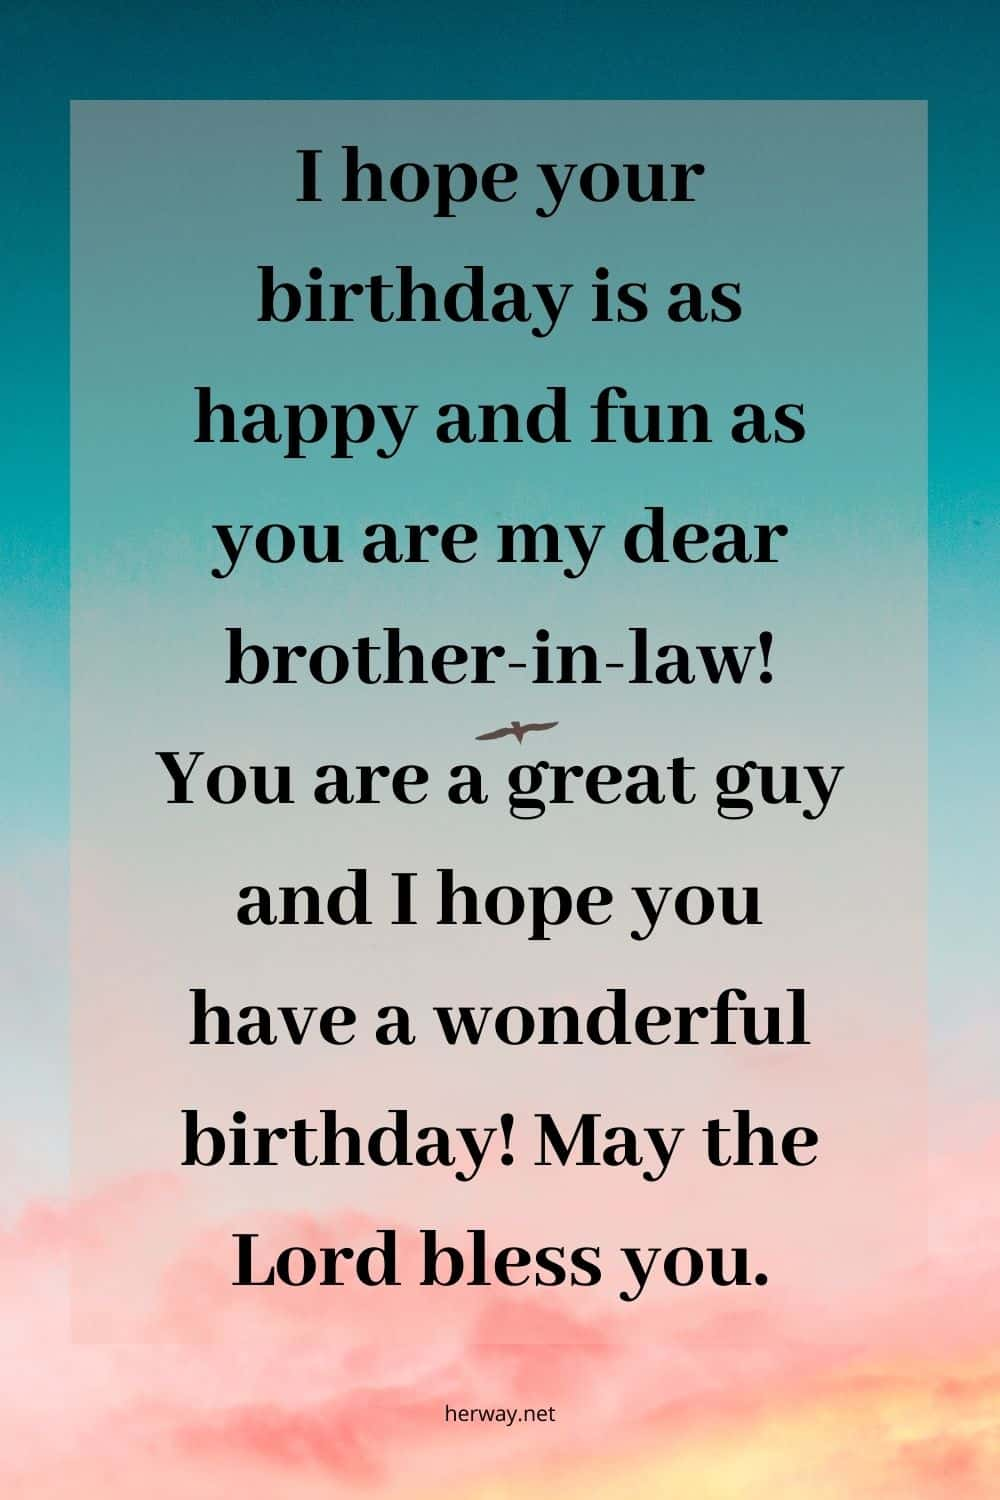 Blessing Quotes On Birthday To Brother Greetings And Wishes Images